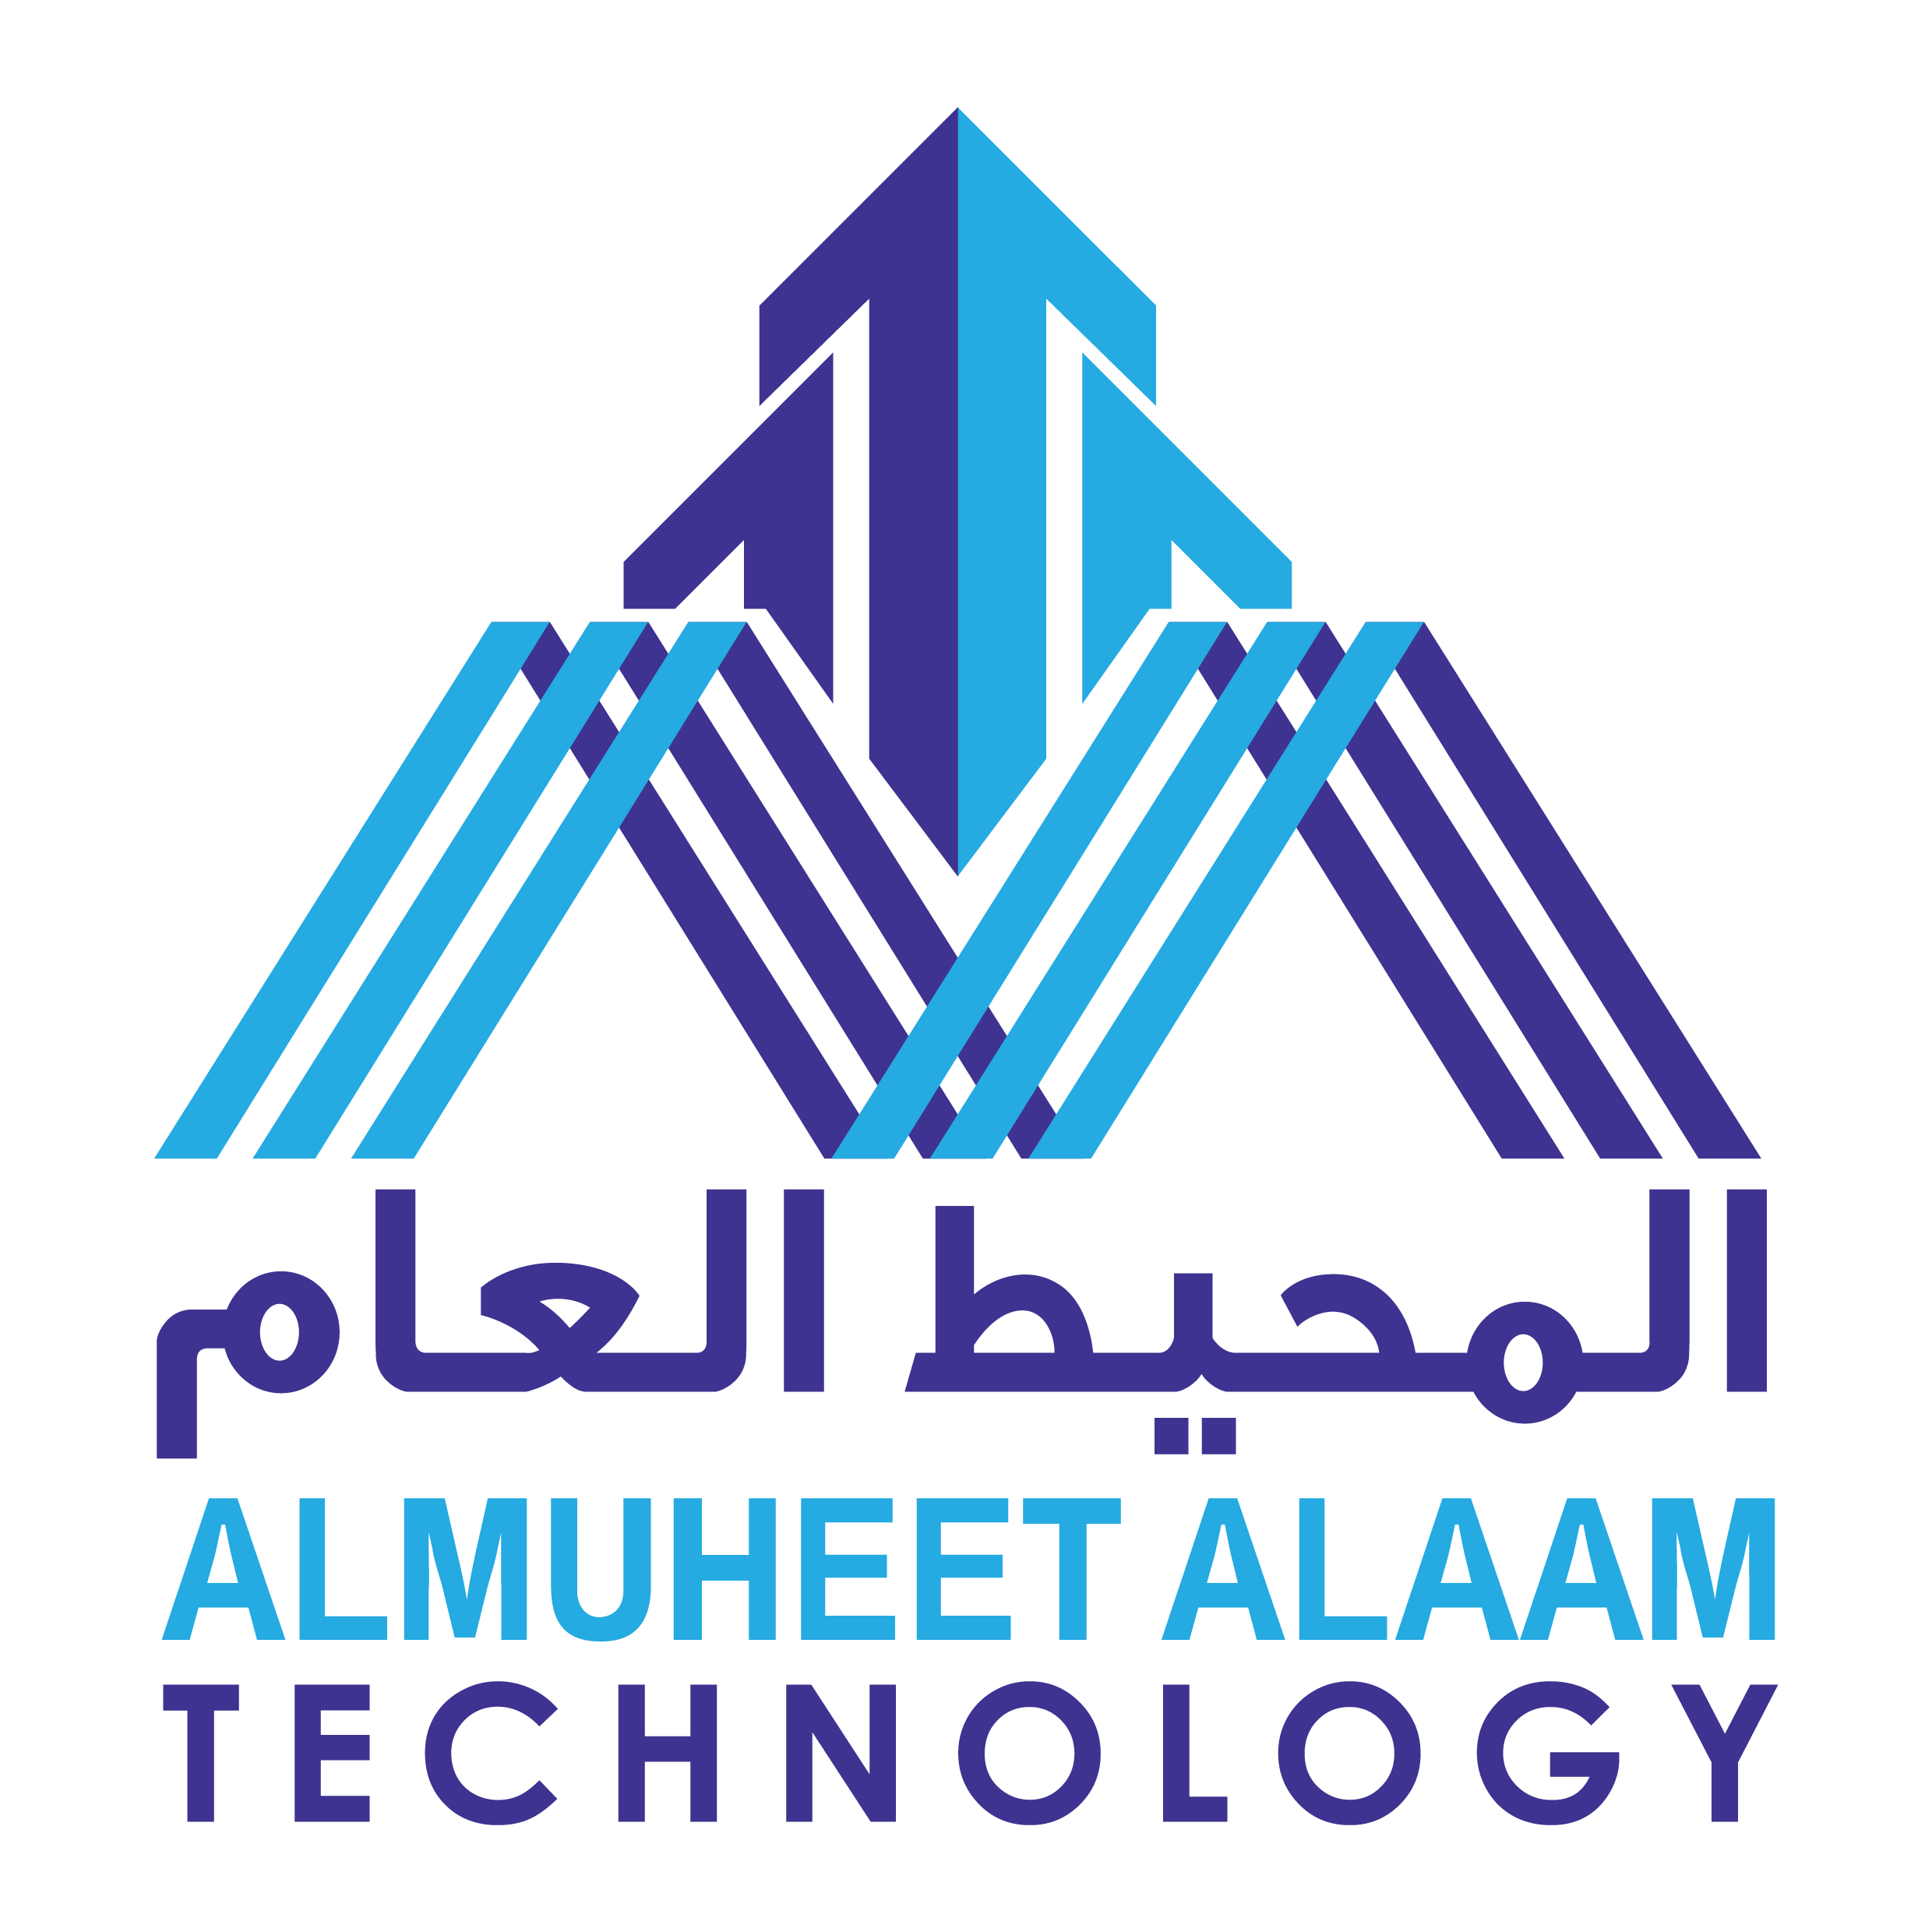 Al Muheet Al Aam Technology Web Design Company in Dubai